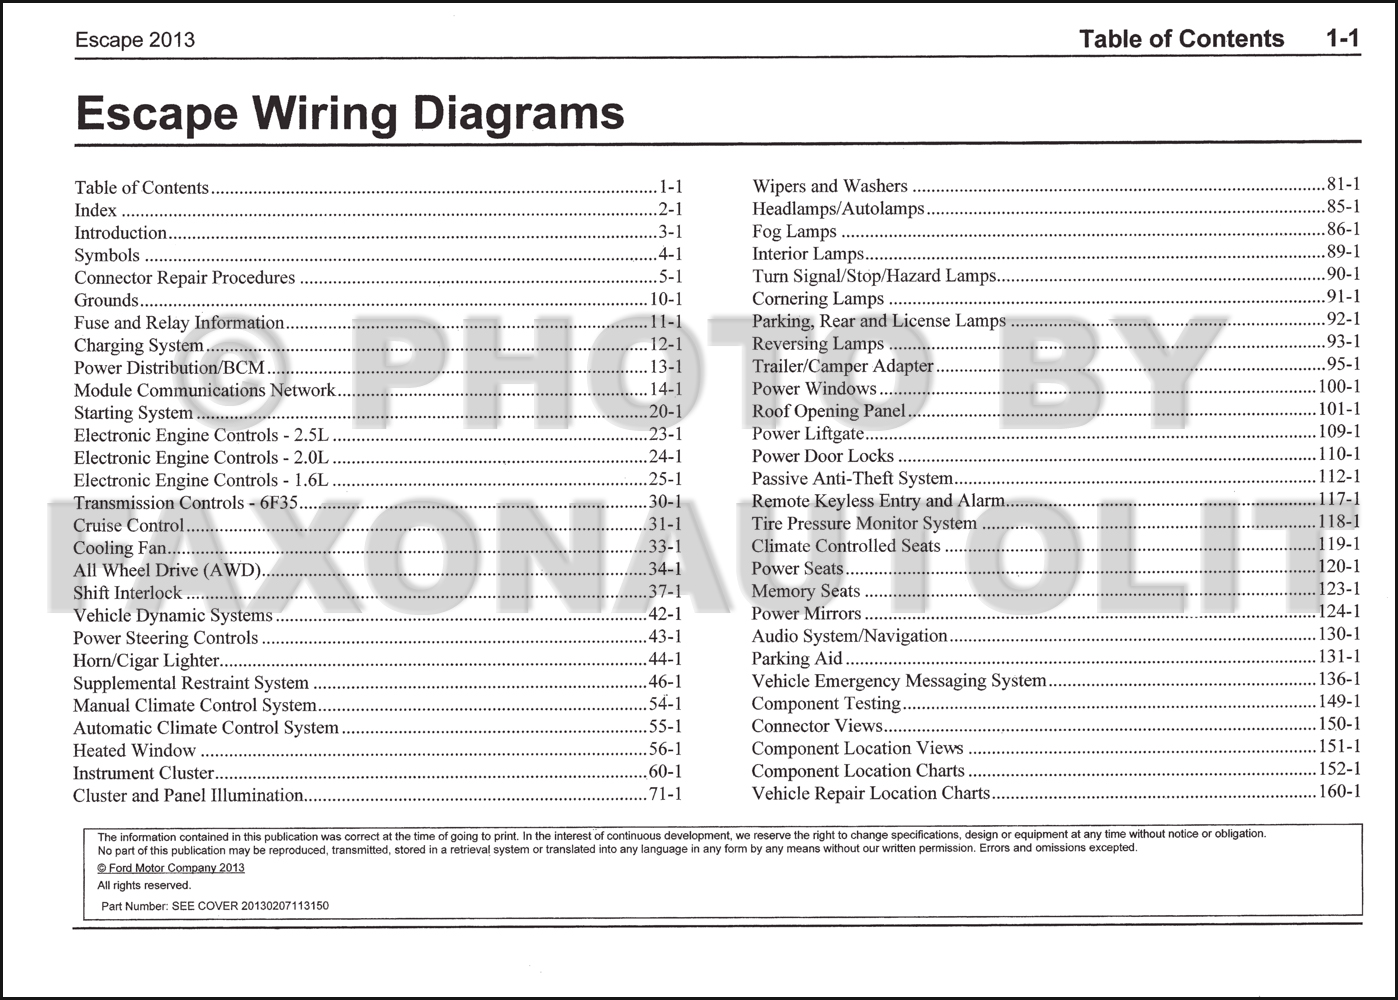 2006 ford escape wiring diagram wiring diagram and hernes what are the wires for a side view mirror in 2006 ford f 150 source 2004 ford escape stereo wiring diagram